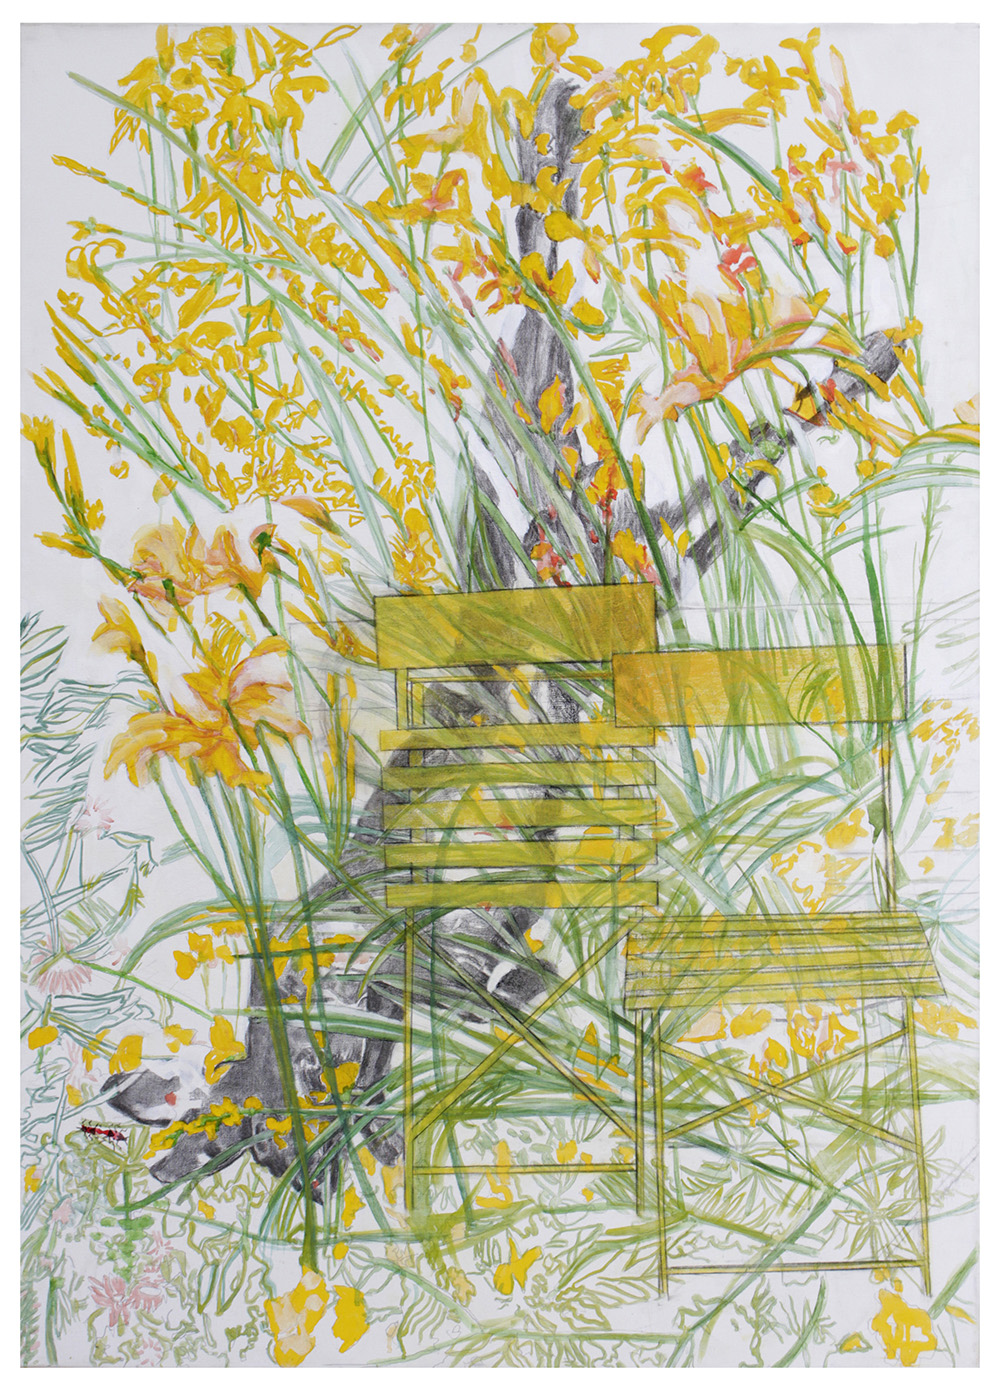 Hemerocallis fulva (two yellow chairs), 2018_Mixed media on canvas_140 x 100 cm